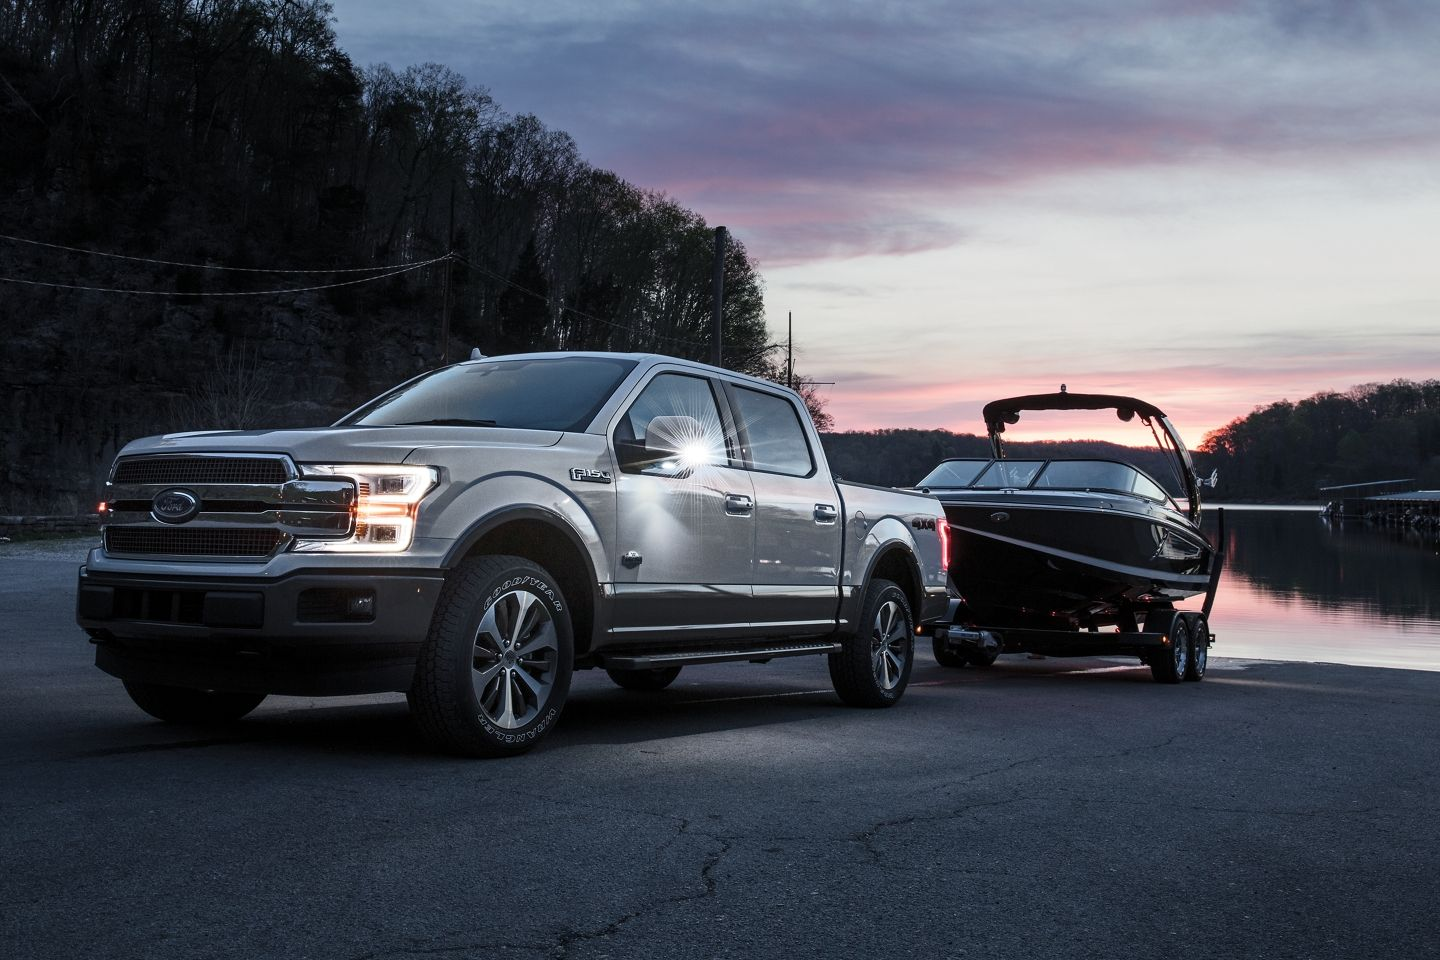 Ts S Ford Welcomes The 2020 Ford F 150 Near Prineville Or A Full Size Pick Up With The Ideal Blend Of Power And